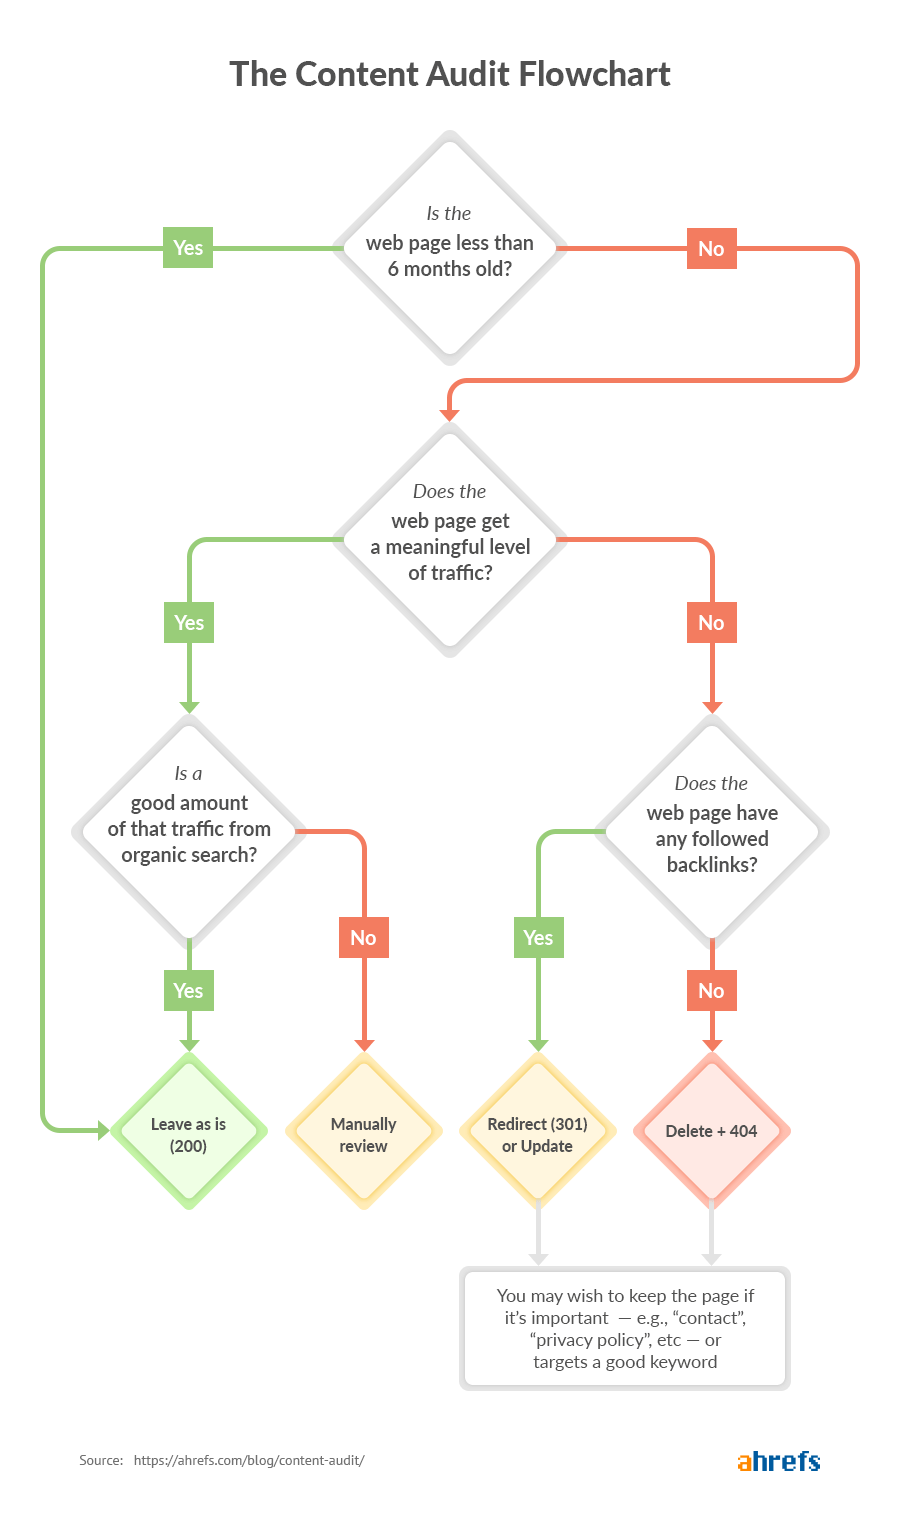 content_audit_flowchart_image